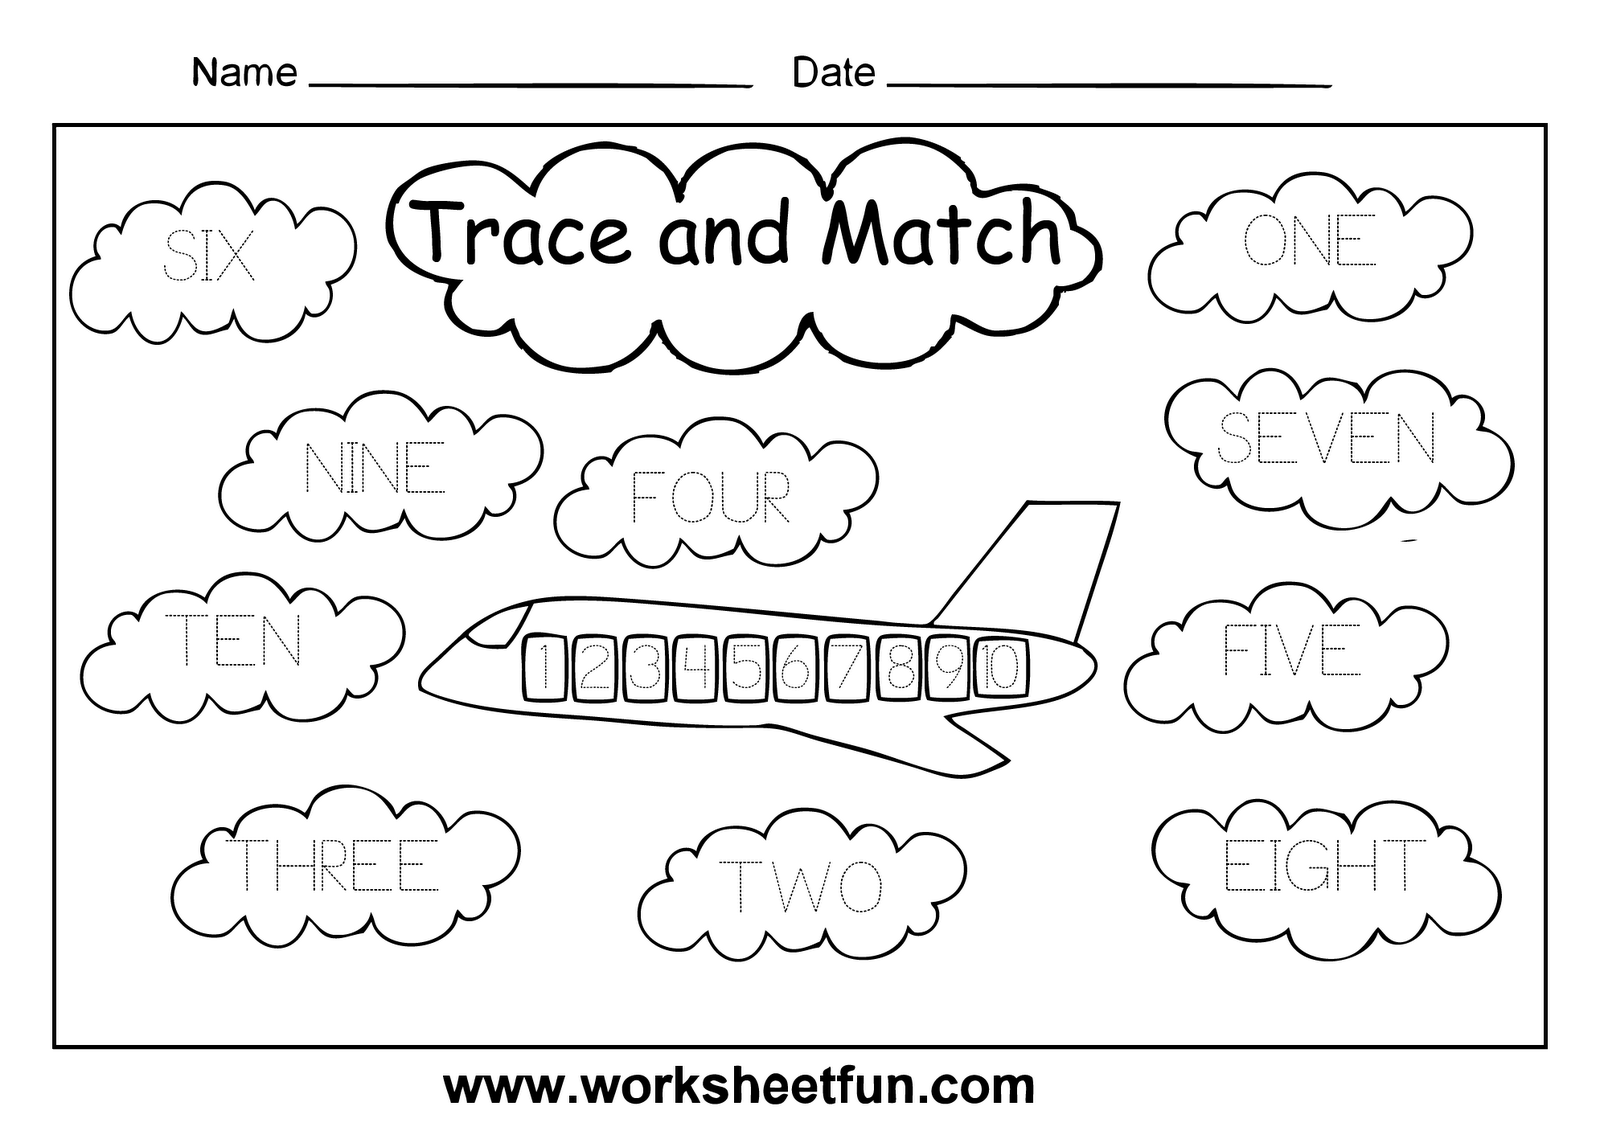 Weirdmailus  Splendid Worksheet Numbers    Reocurent With Entrancing Opposite Worksheets For Grade  Besides Kid Zone Worksheets Furthermore Fractions Lowest Terms Worksheet With Adorable Possible Outcomes Worksheets Also Passive Voice Sentences Worksheet In Addition Free Printable Division Worksheets For Rd Grade And English Kindergarten Worksheets As Well As Worksheets For  Year Olds Free Printable Additionally Blank Clock Face Worksheets From Reocurentcom With Weirdmailus  Entrancing Worksheet Numbers    Reocurent With Adorable Opposite Worksheets For Grade  Besides Kid Zone Worksheets Furthermore Fractions Lowest Terms Worksheet And Splendid Possible Outcomes Worksheets Also Passive Voice Sentences Worksheet In Addition Free Printable Division Worksheets For Rd Grade From Reocurentcom